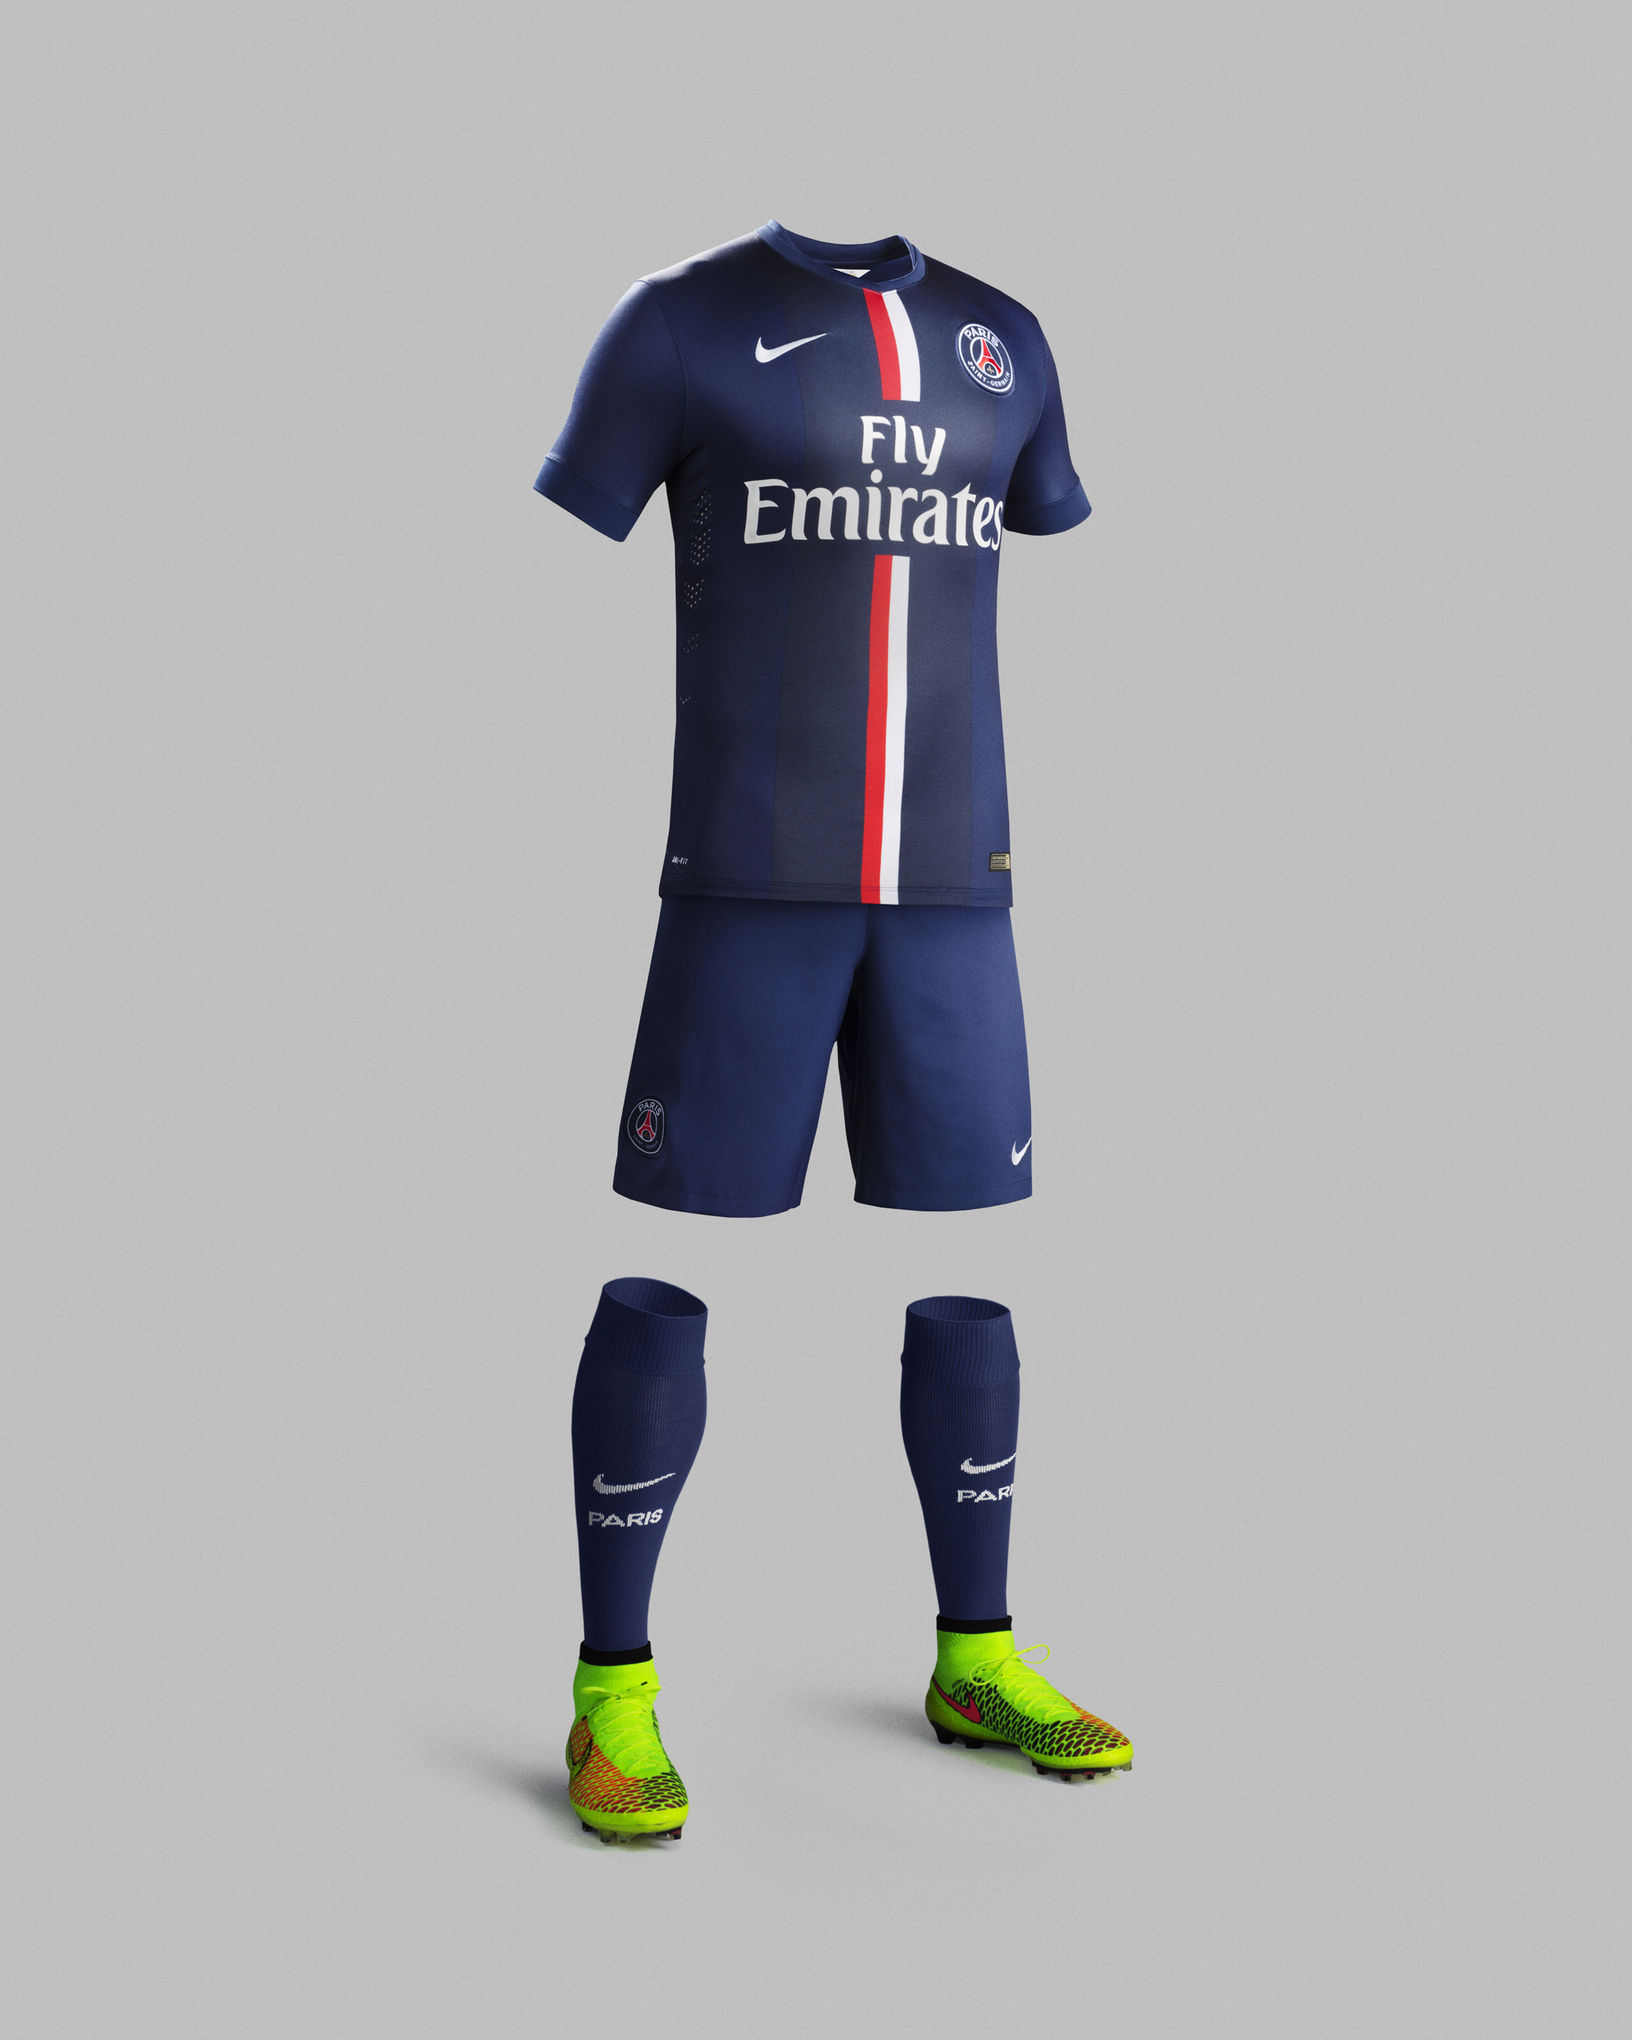 meet cd195 51c0e Nike dare to PSG with 2014/15 home kit, Last Game animated ...